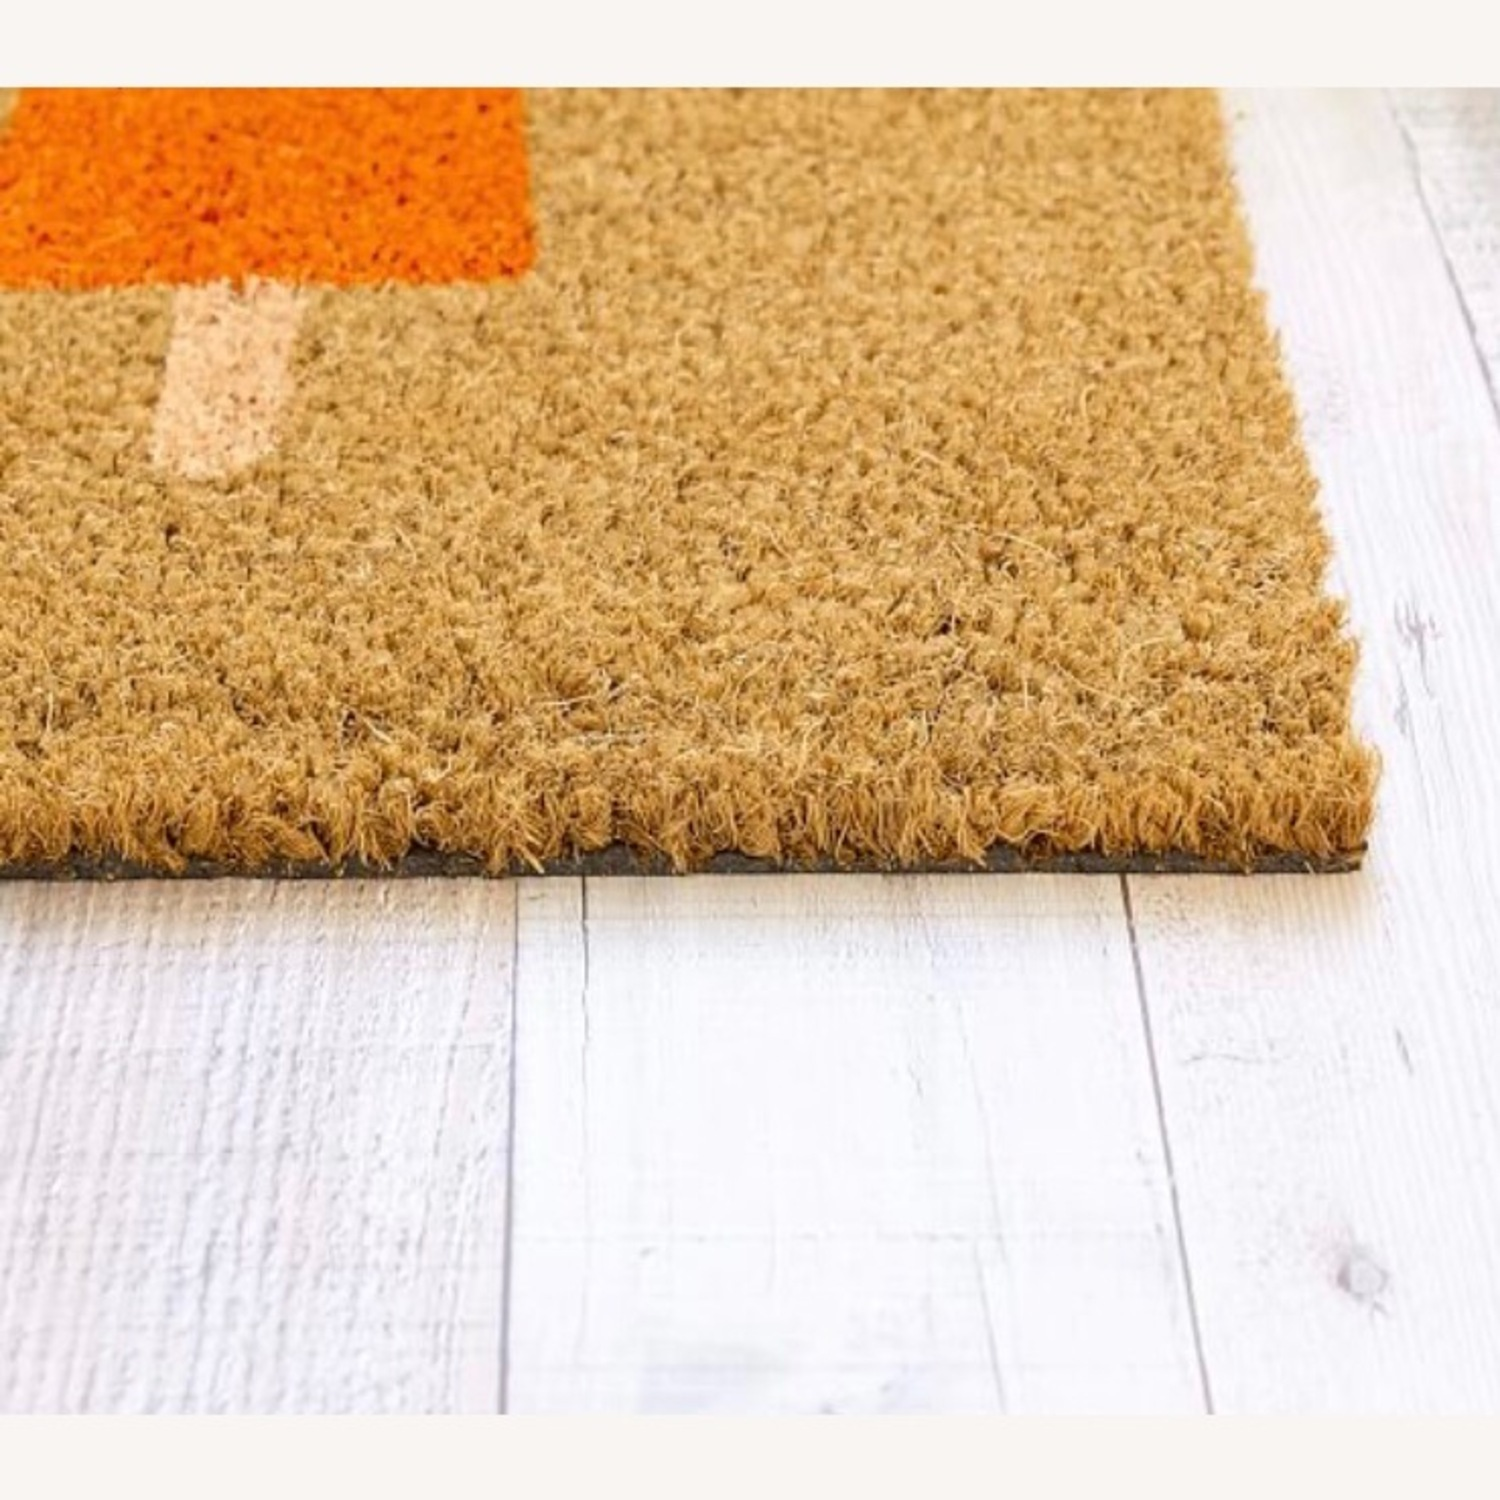 Hand-Painted Popsicle Doormat - image-3